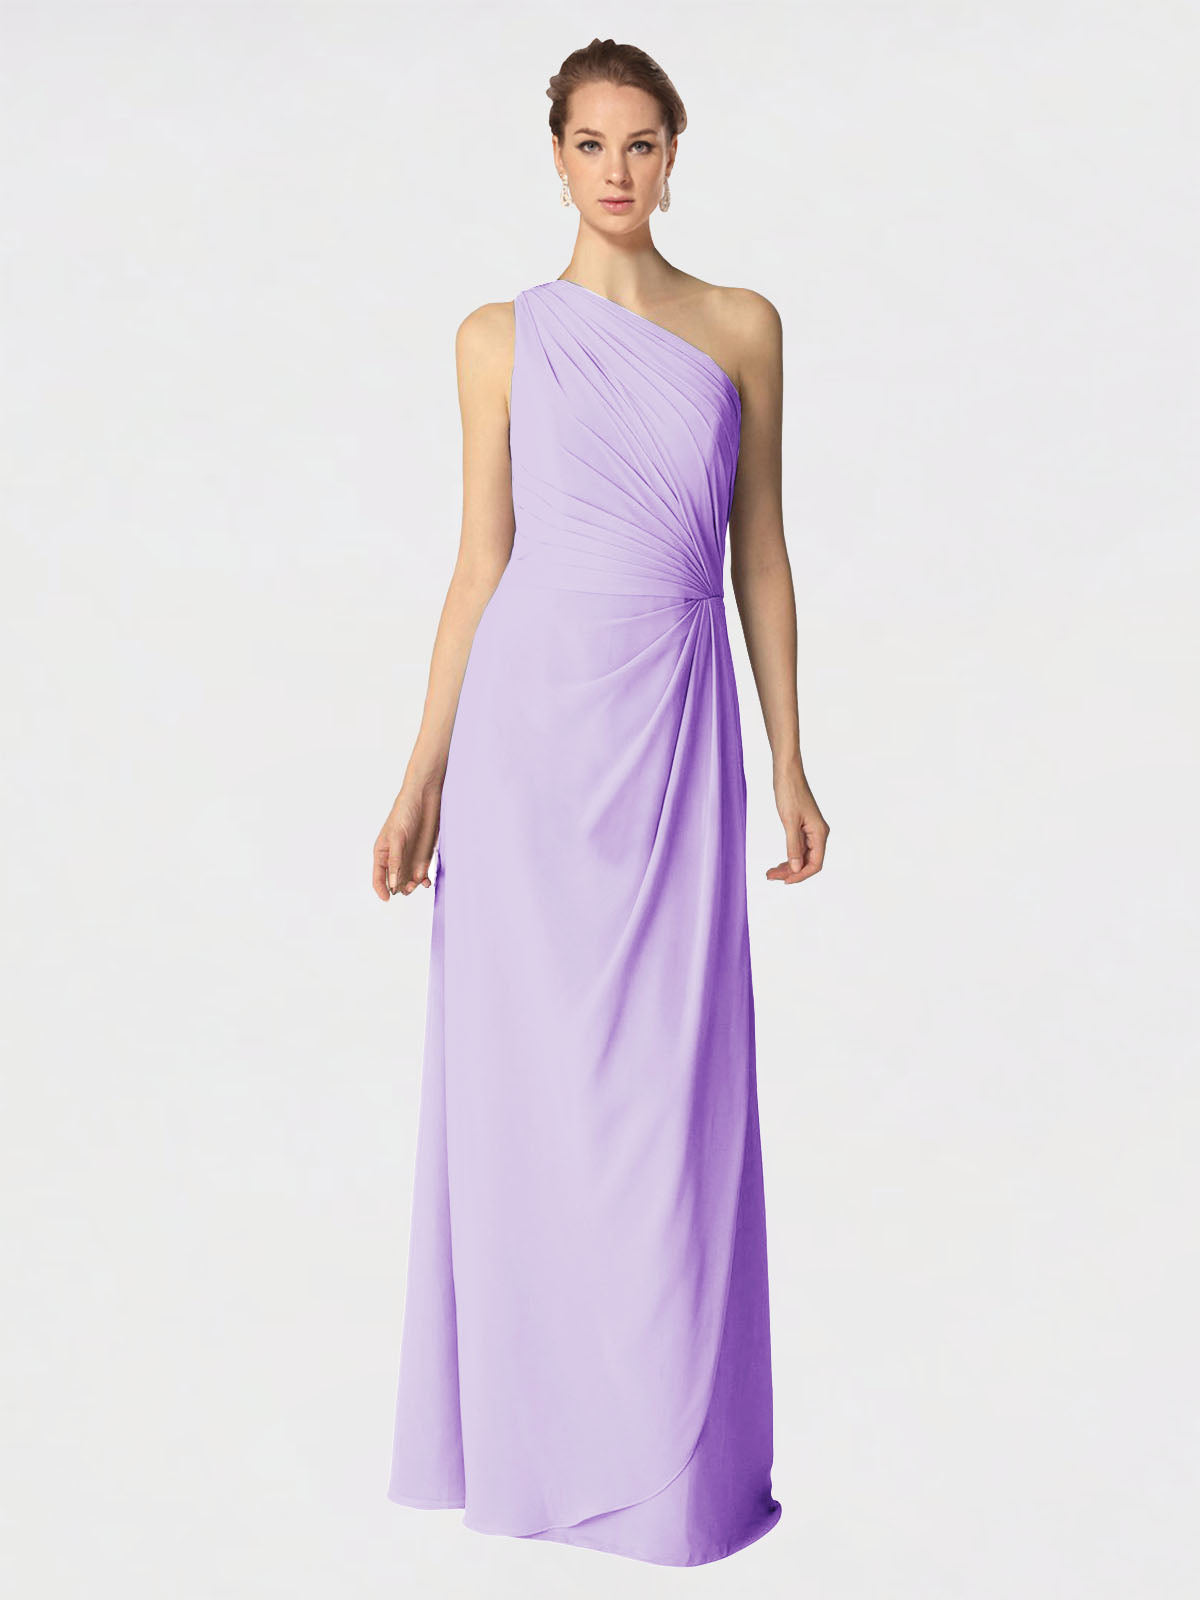 Long A-Line One Shoulder Sleeveless Lilac Chiffon Bridesmaid Dress Aurora